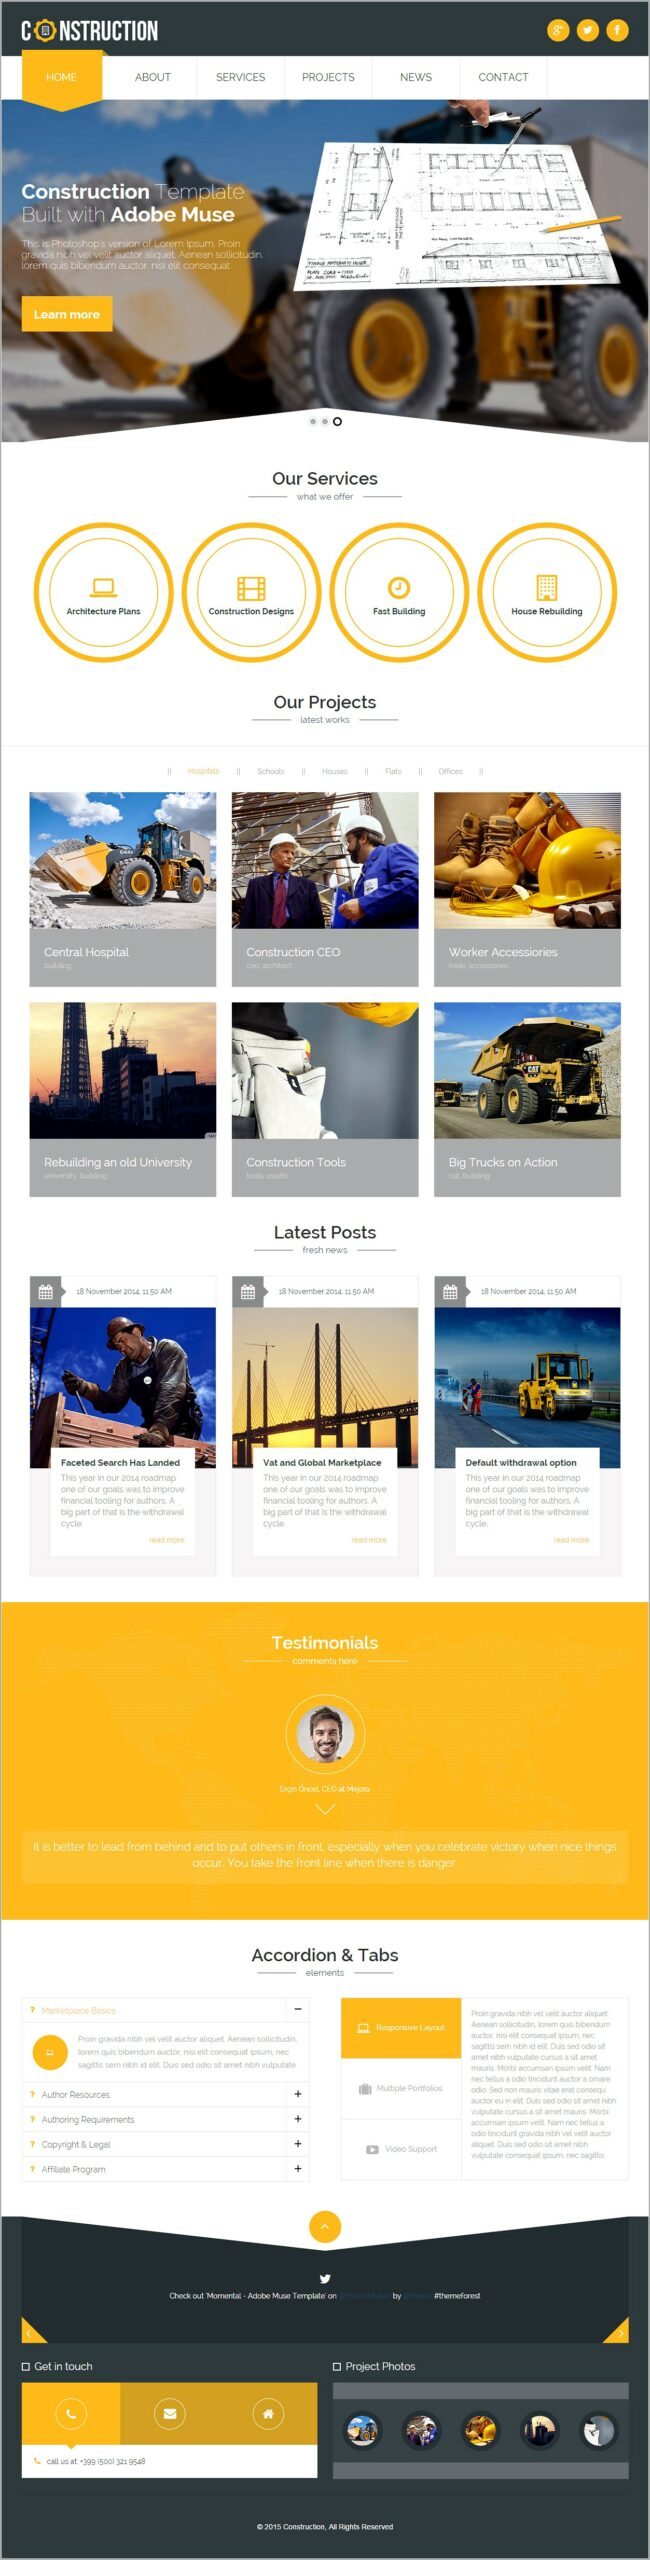 Muse Responsive Design Template